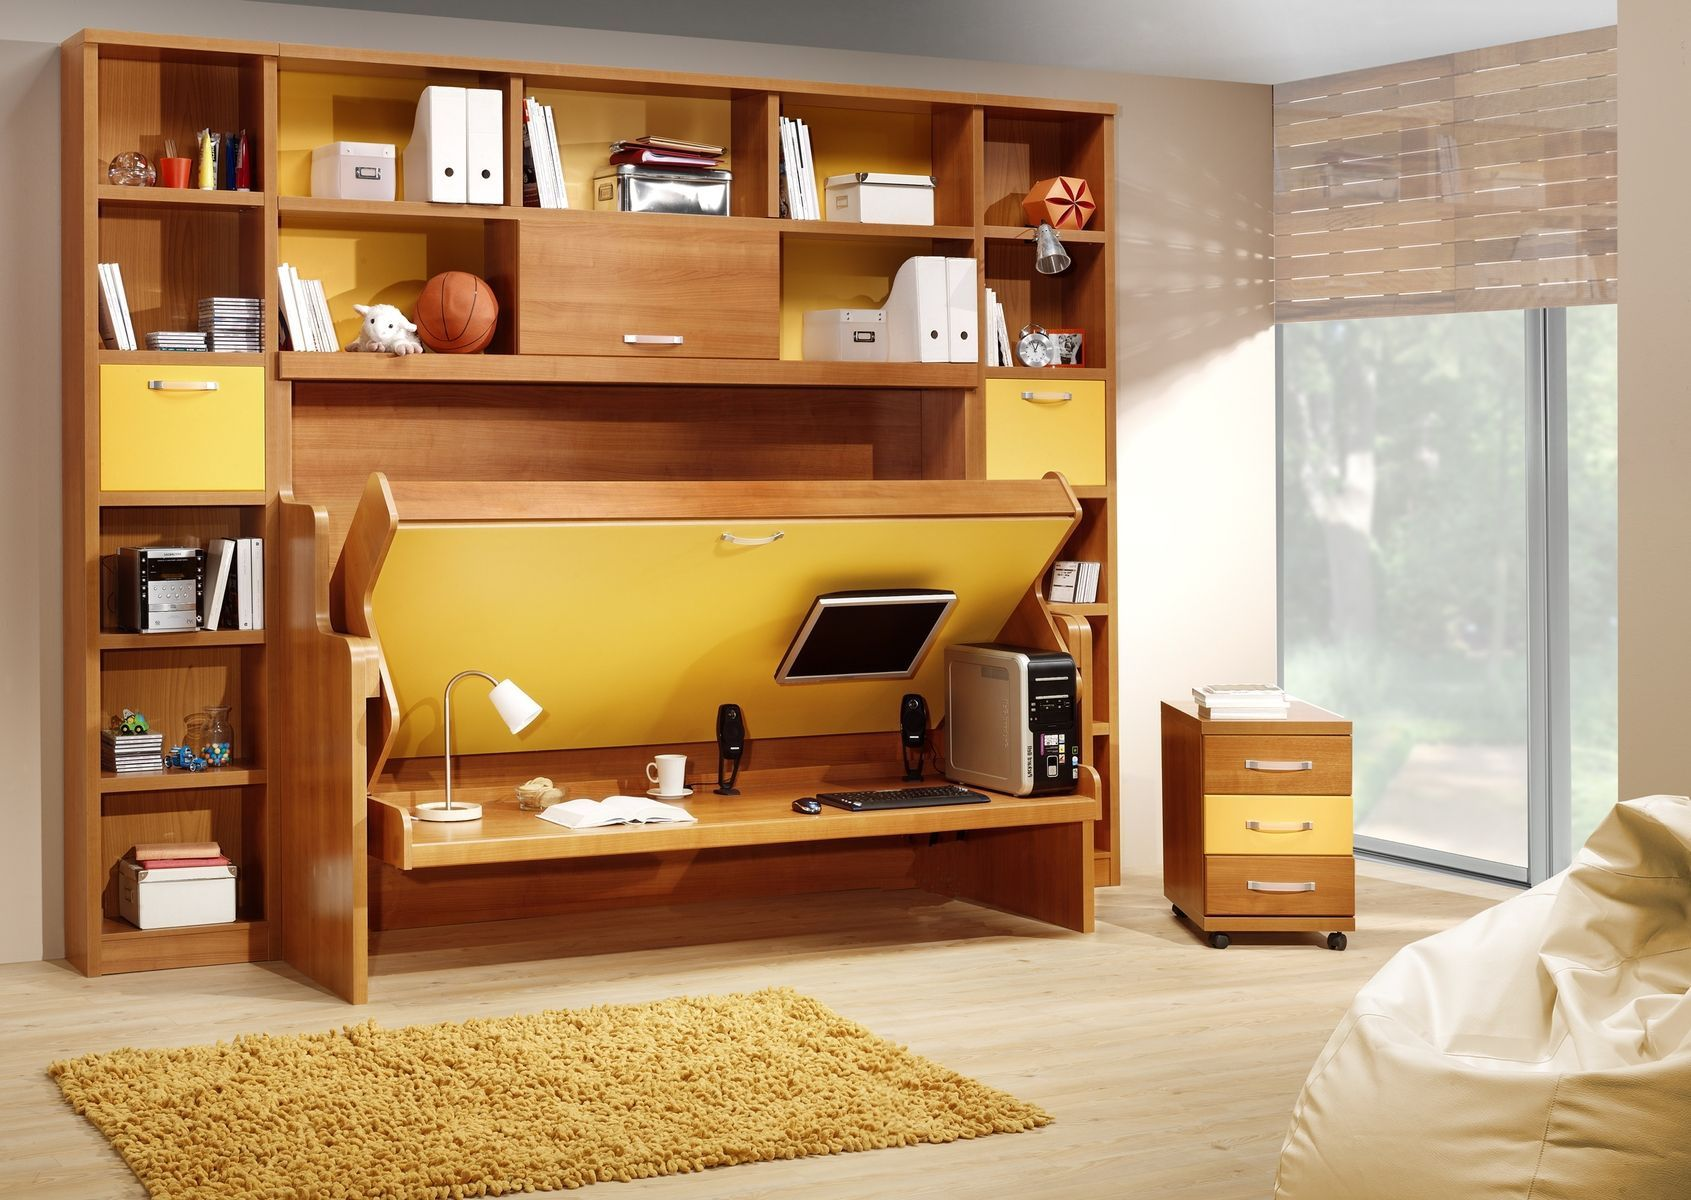 Fascinating Wooden Bookshelves and Reversible Furniture for Small Spaces Completing Cozy Bedroom with Oak Flooring